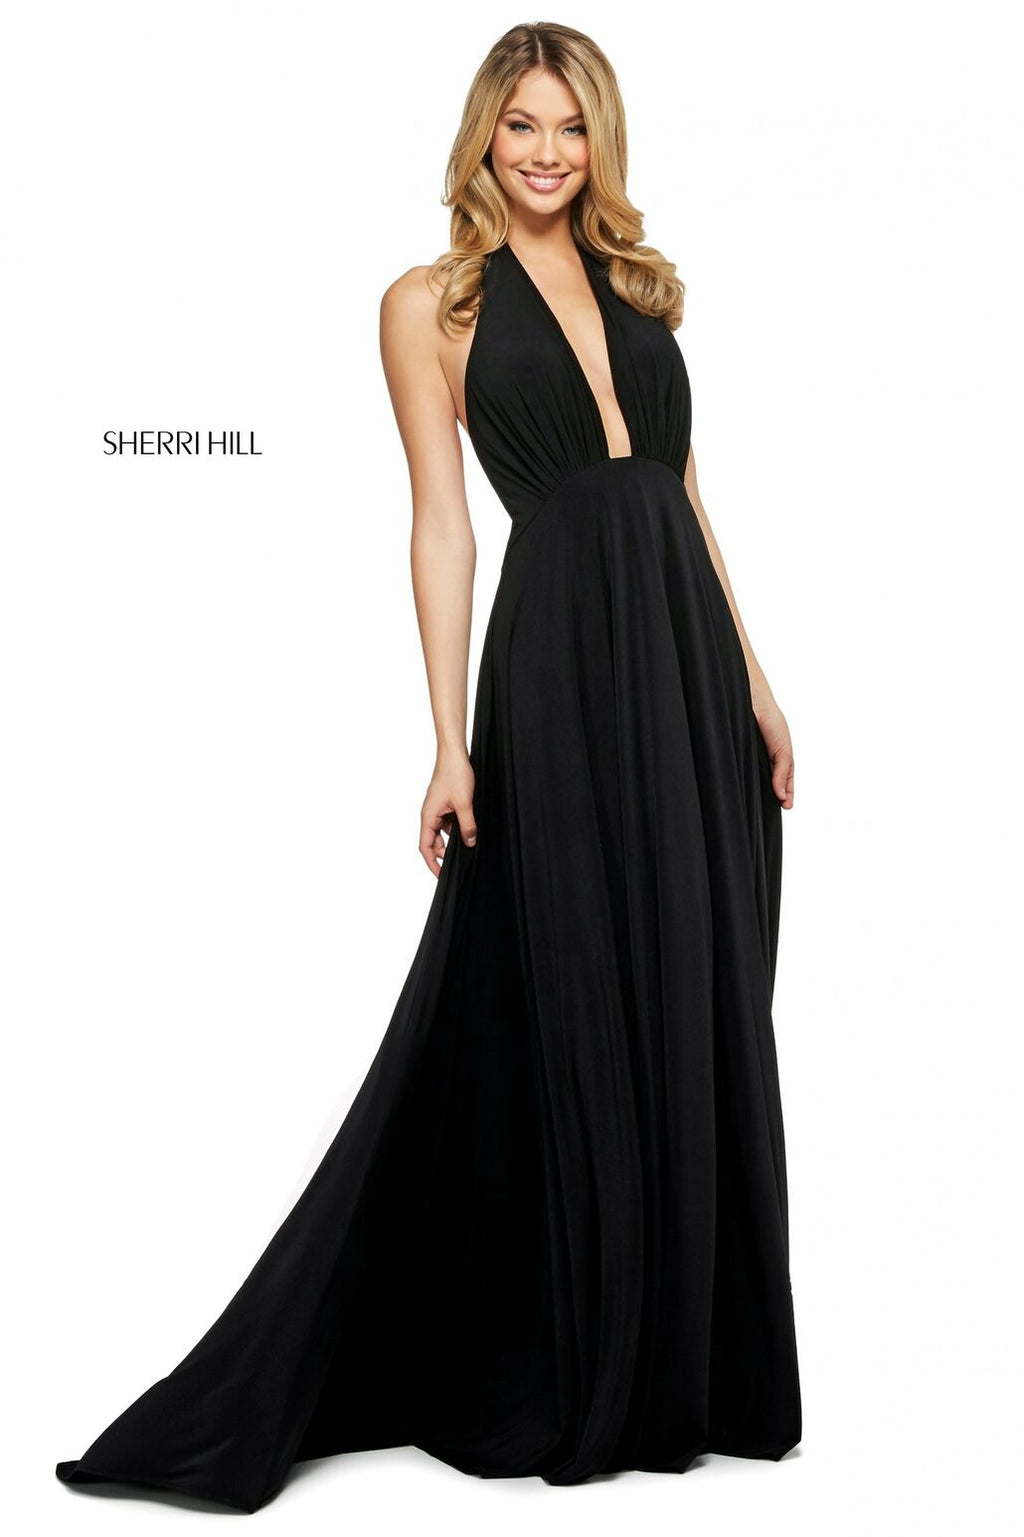 SHERRI HILL PROM DRESS #53577